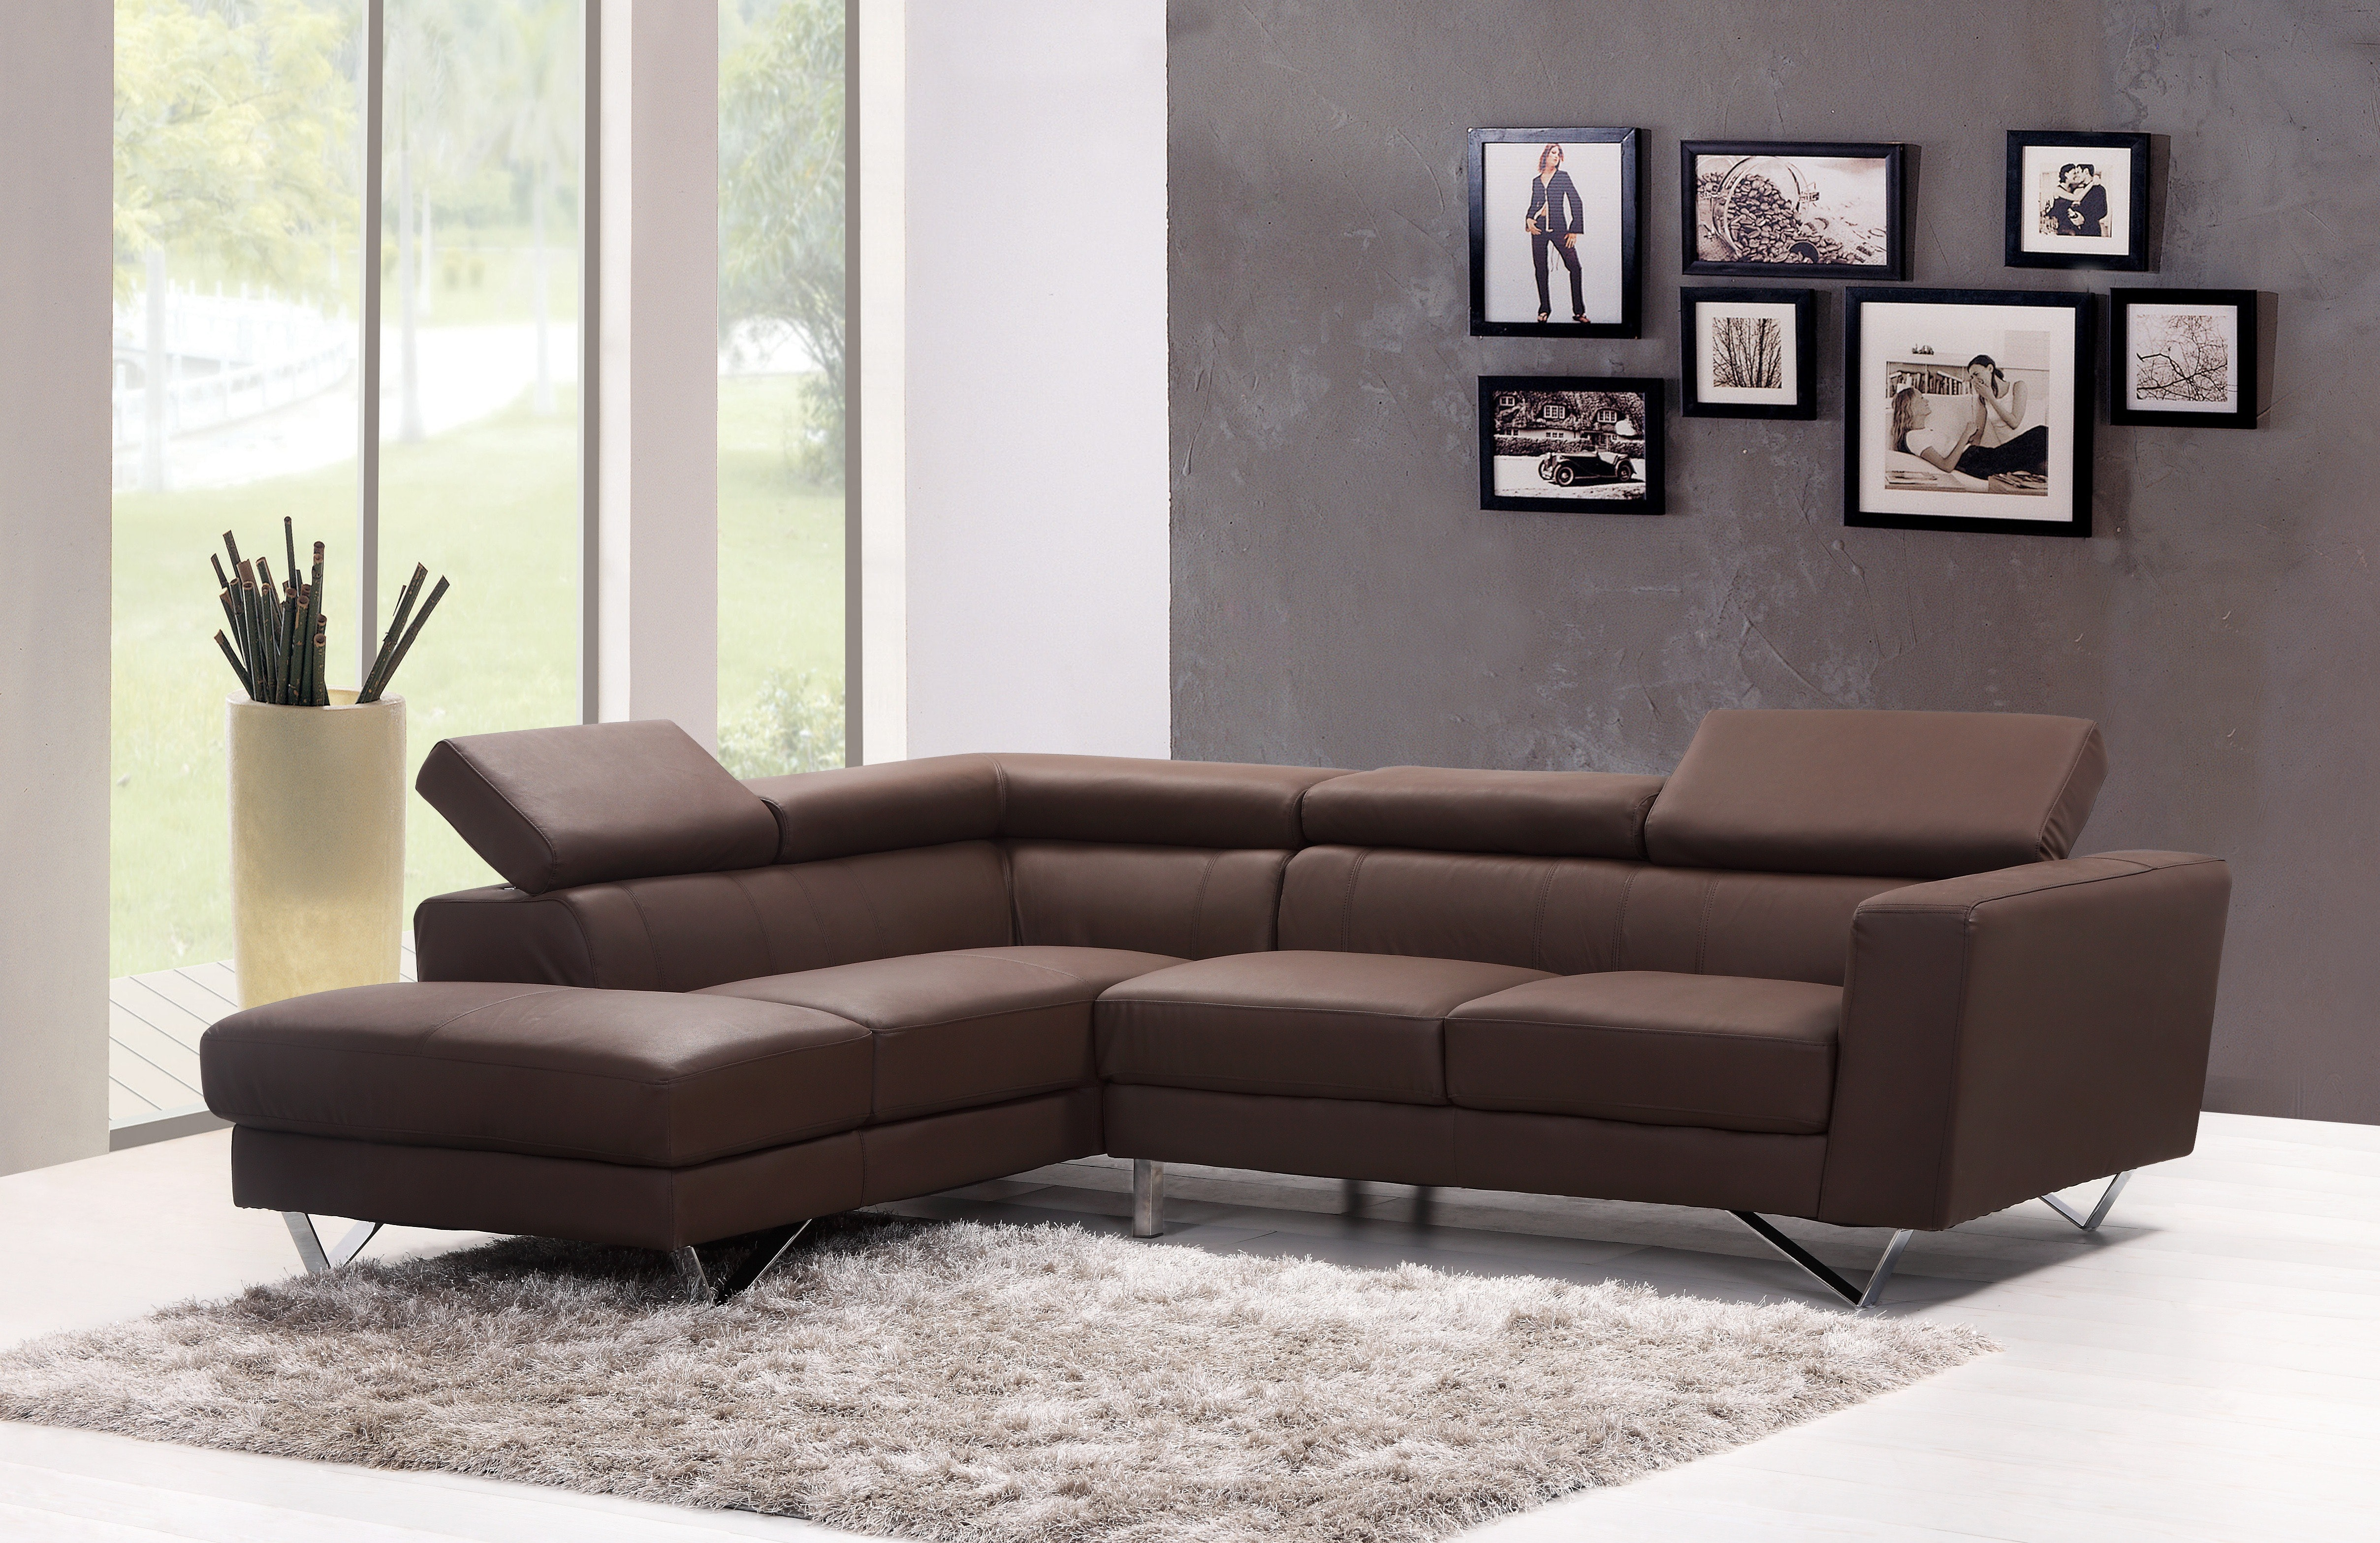 Brown Leather Sectional Sofa Free Stock Photo